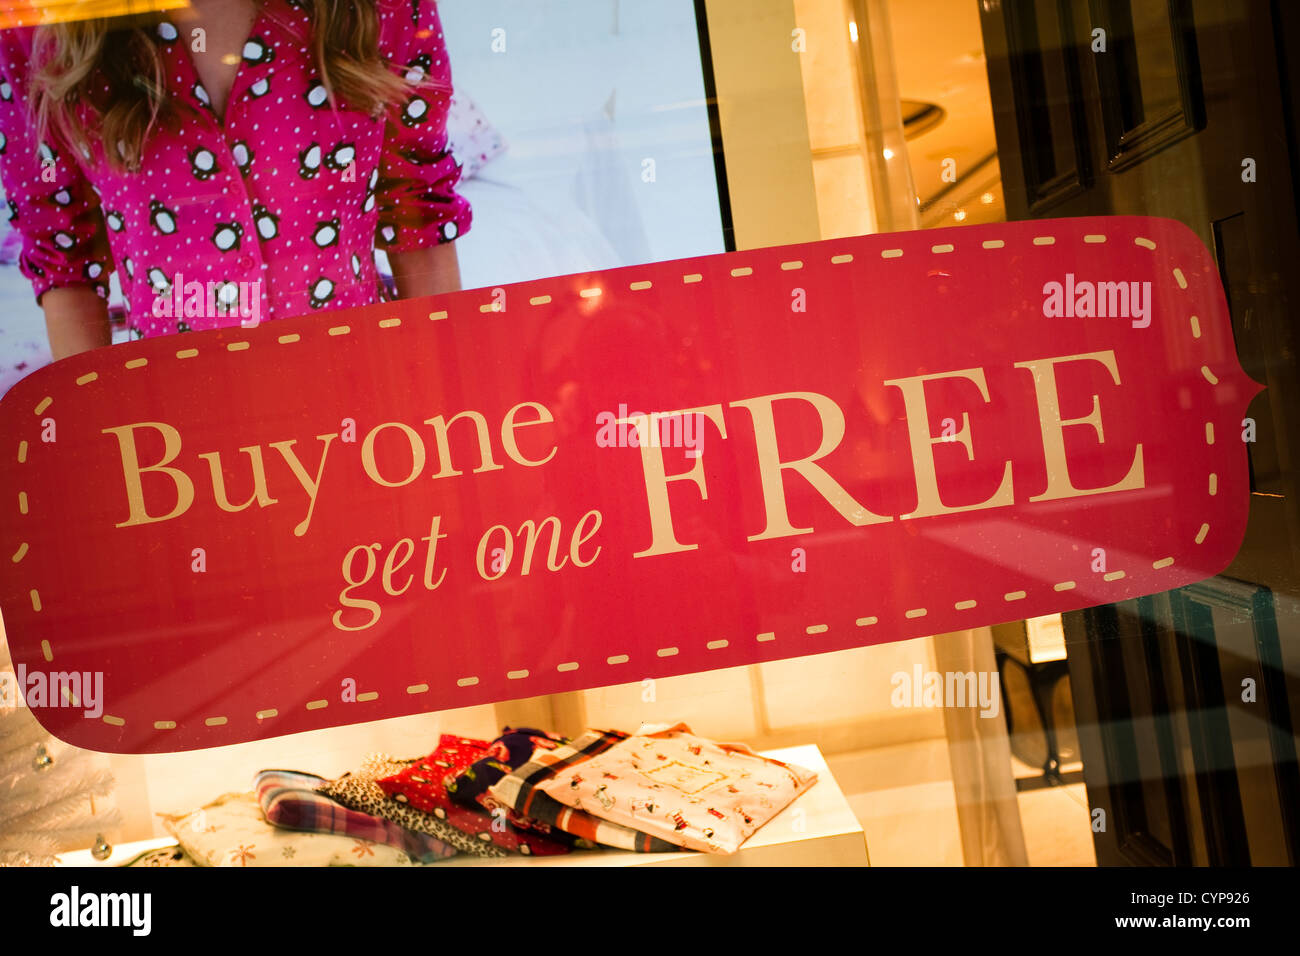 Bogof Buy one Get one Free Signs at Boux Avenue Boutique in Trafford